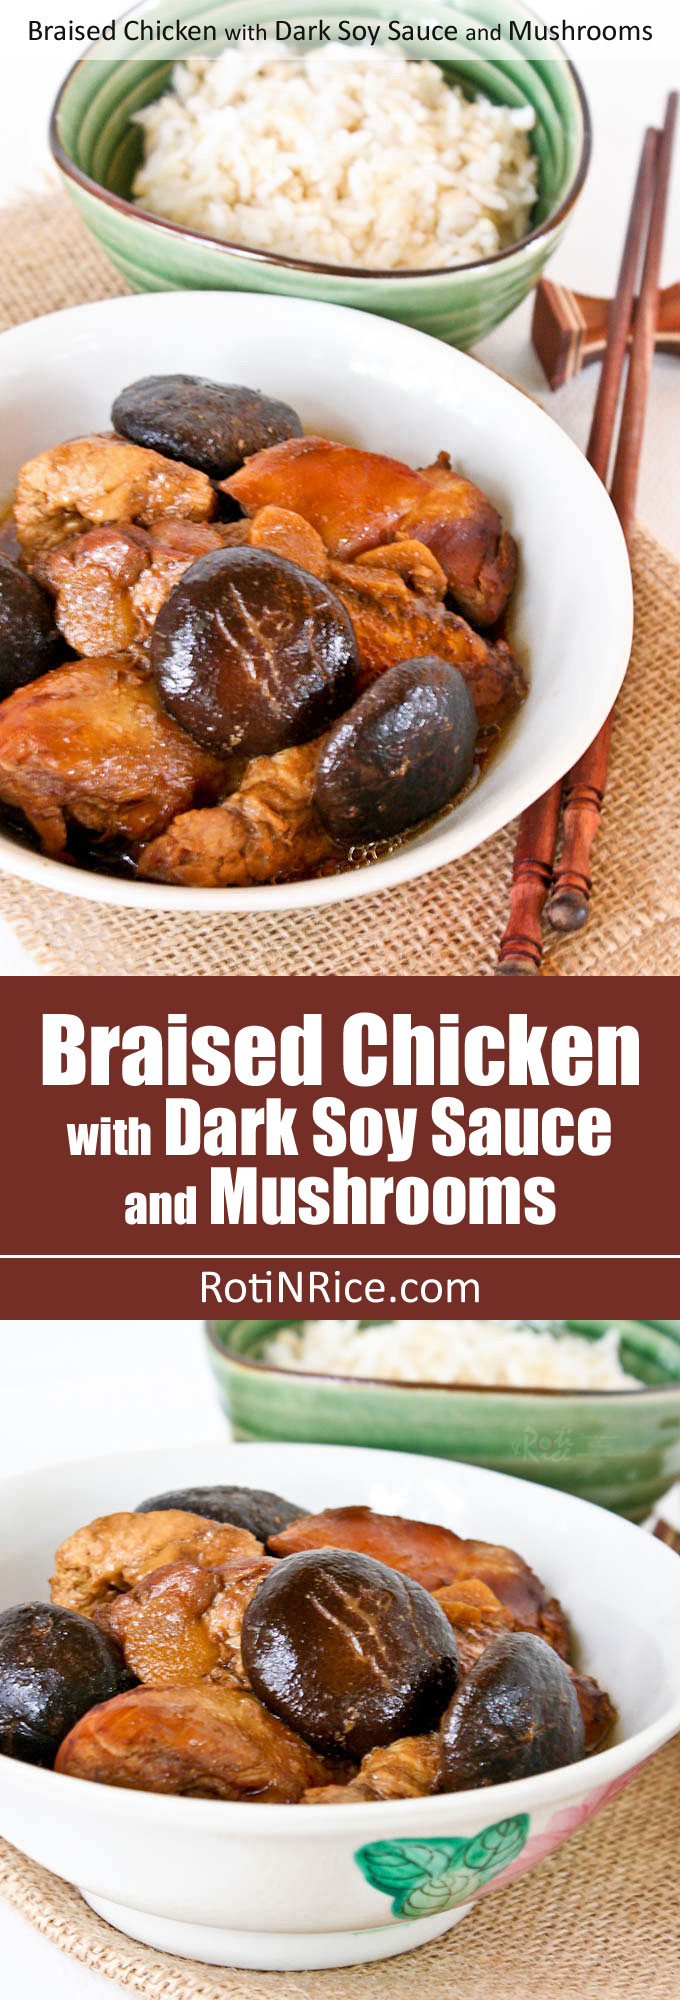 This classic Braised Chicken with Dark Soy Sauce and Mushrooms is Chinese home cooking at its best. So comforting and delicious with a bowl of steamed rice. | RotiNRice.com